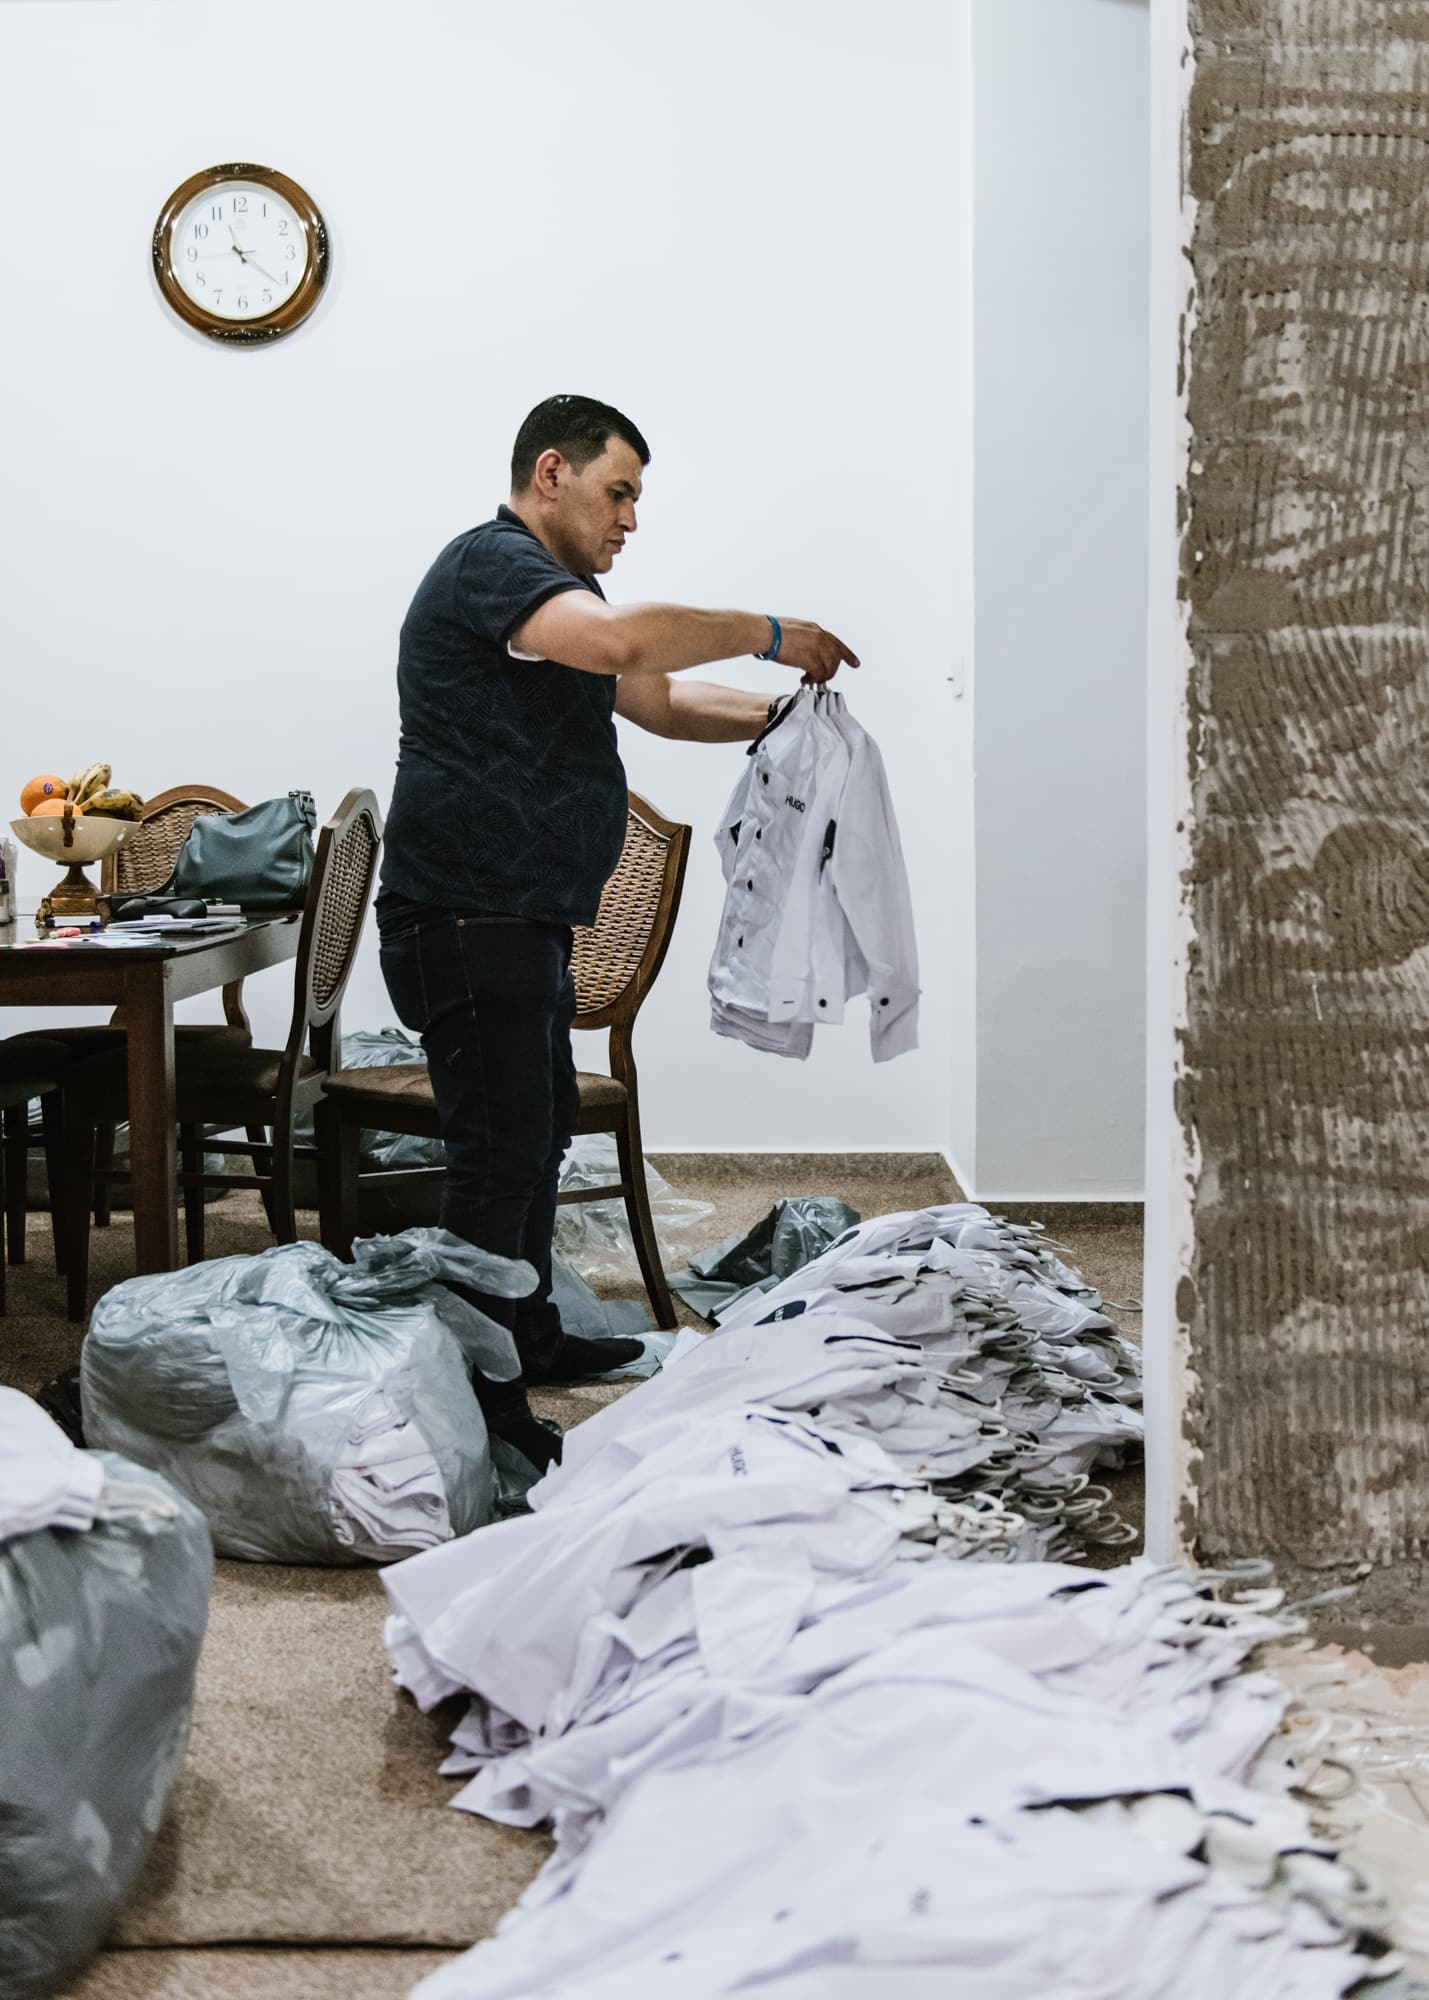 On September 1st, 2019, Abdullah Kurdi sorts out school uniforms he plans to give away to refugee children the next day.